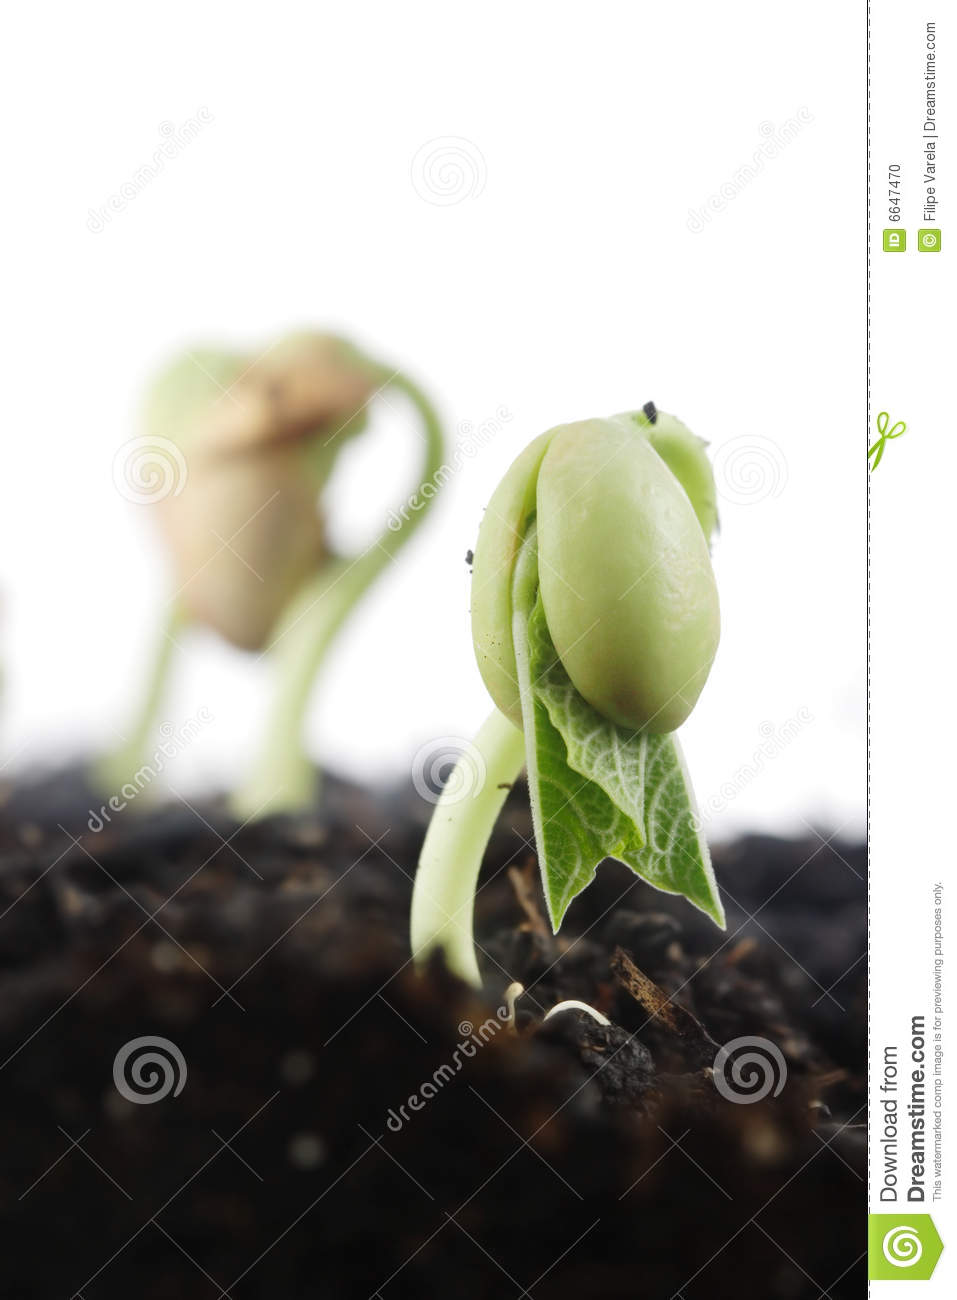 bean germination Read the green bean germination time discussion from the chowhound gardening food community join the discussion today.